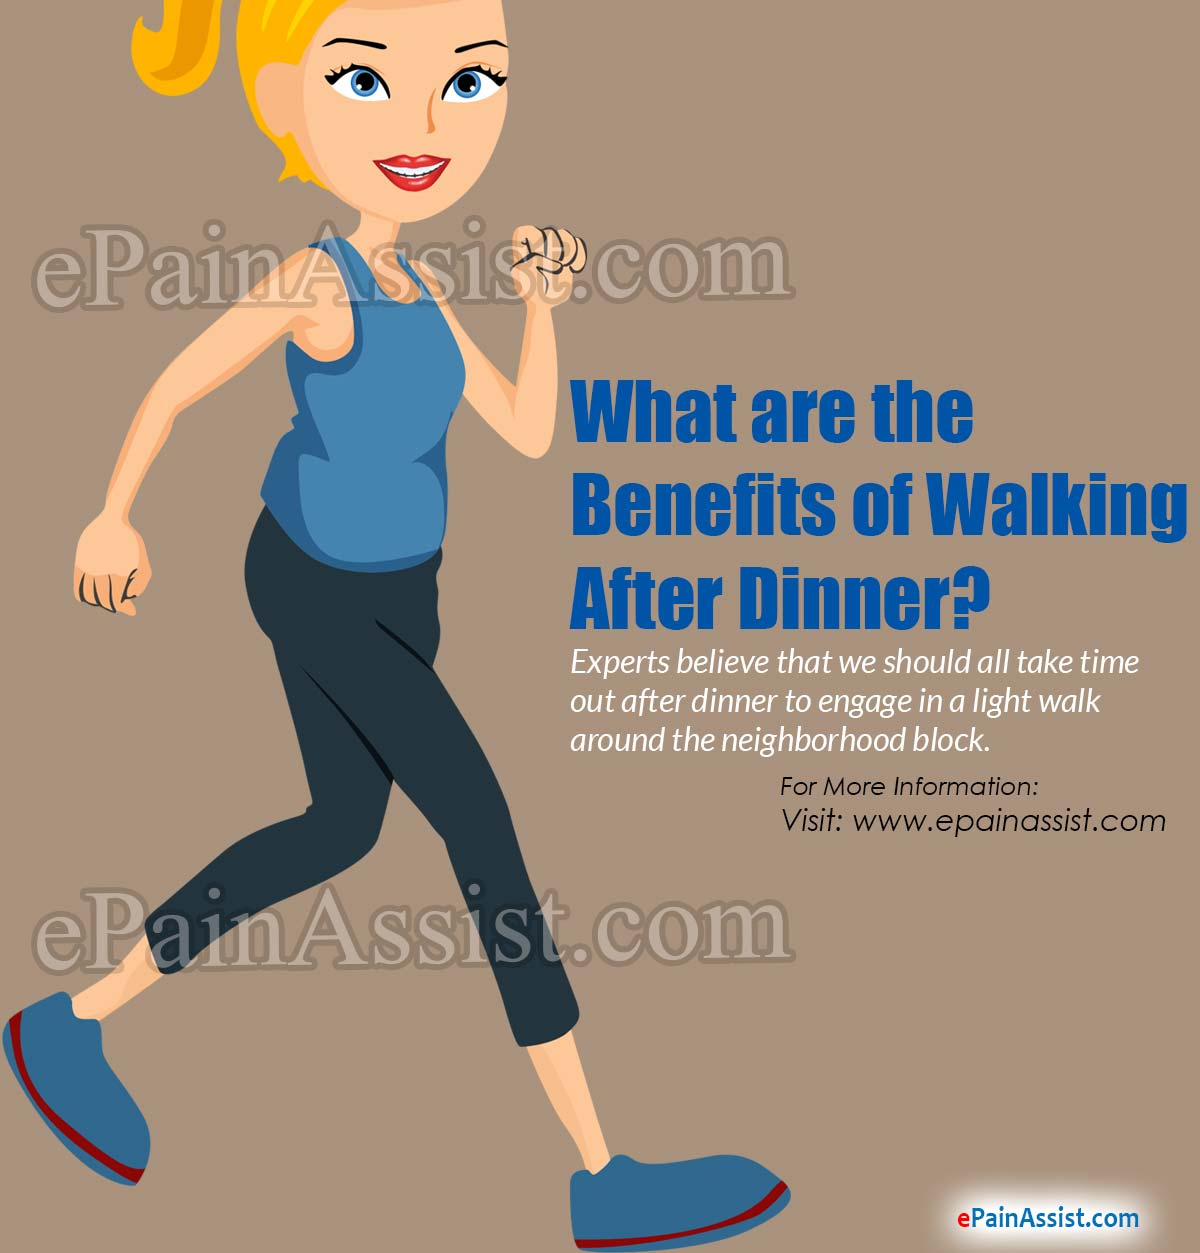 What are the Benefits of Walking After Dinner?